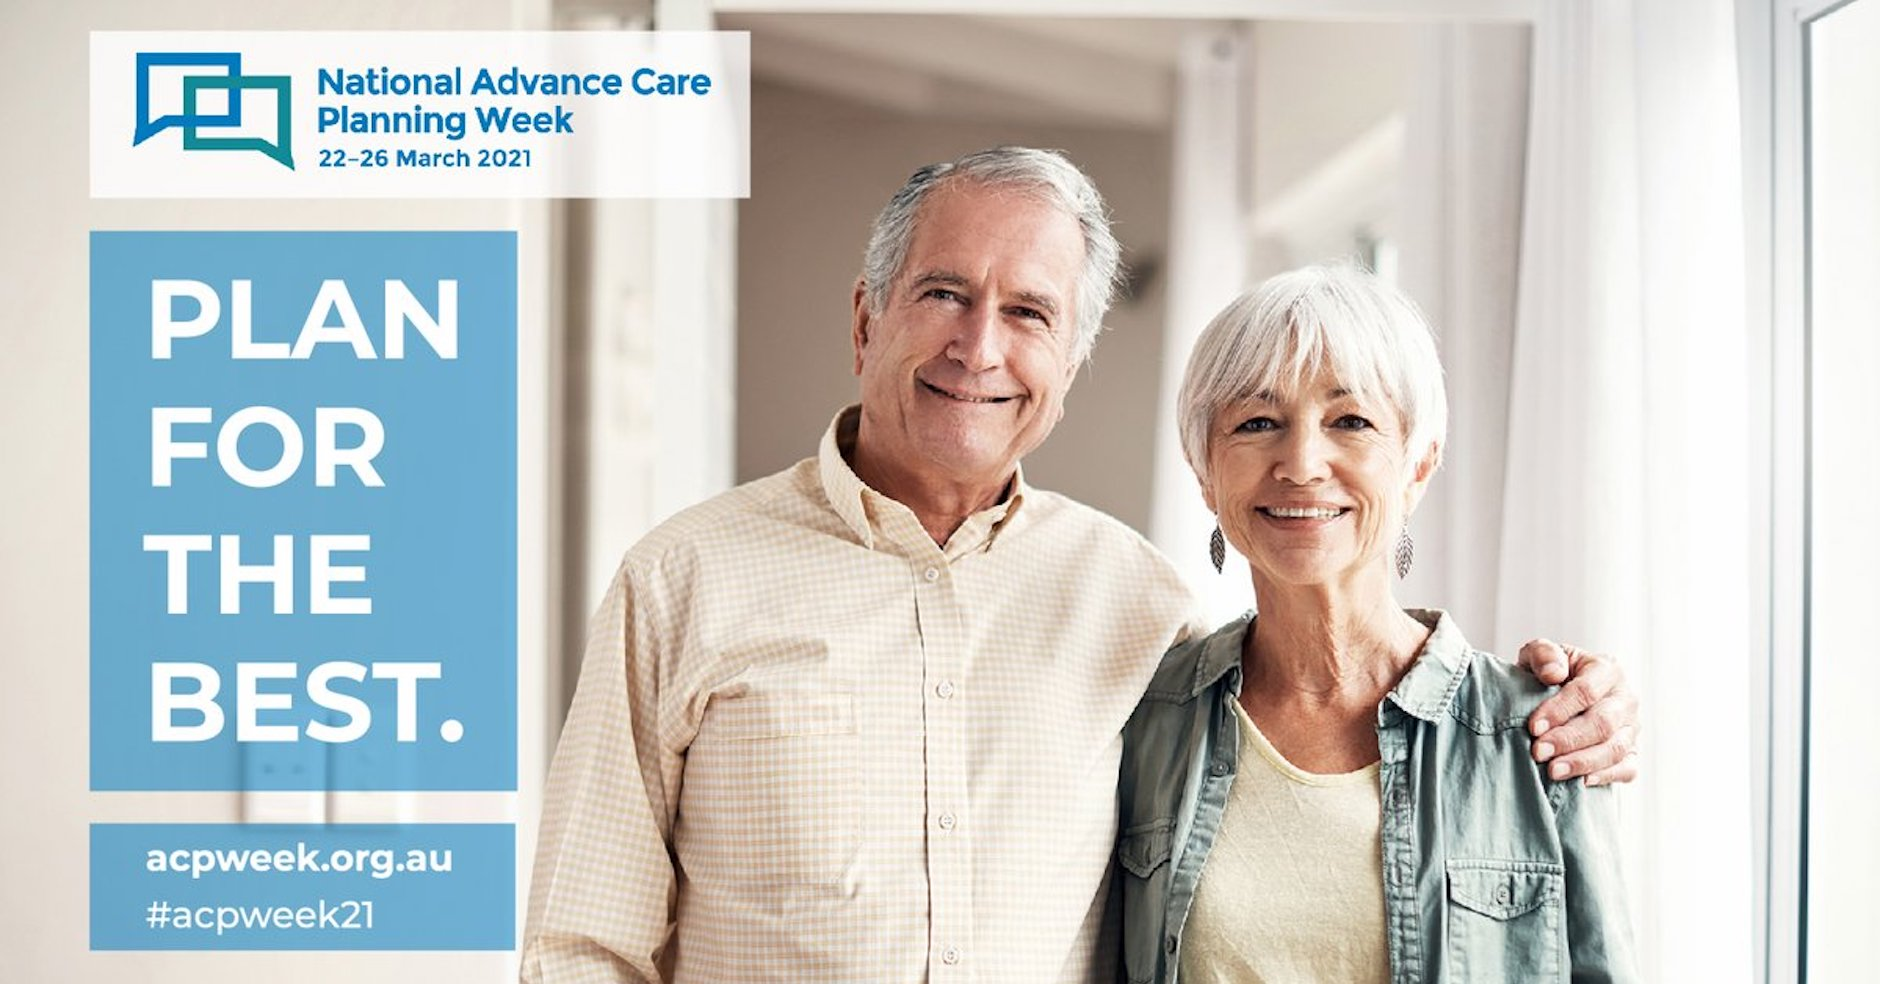 TDHS National Advanced Care Planning Week 2021